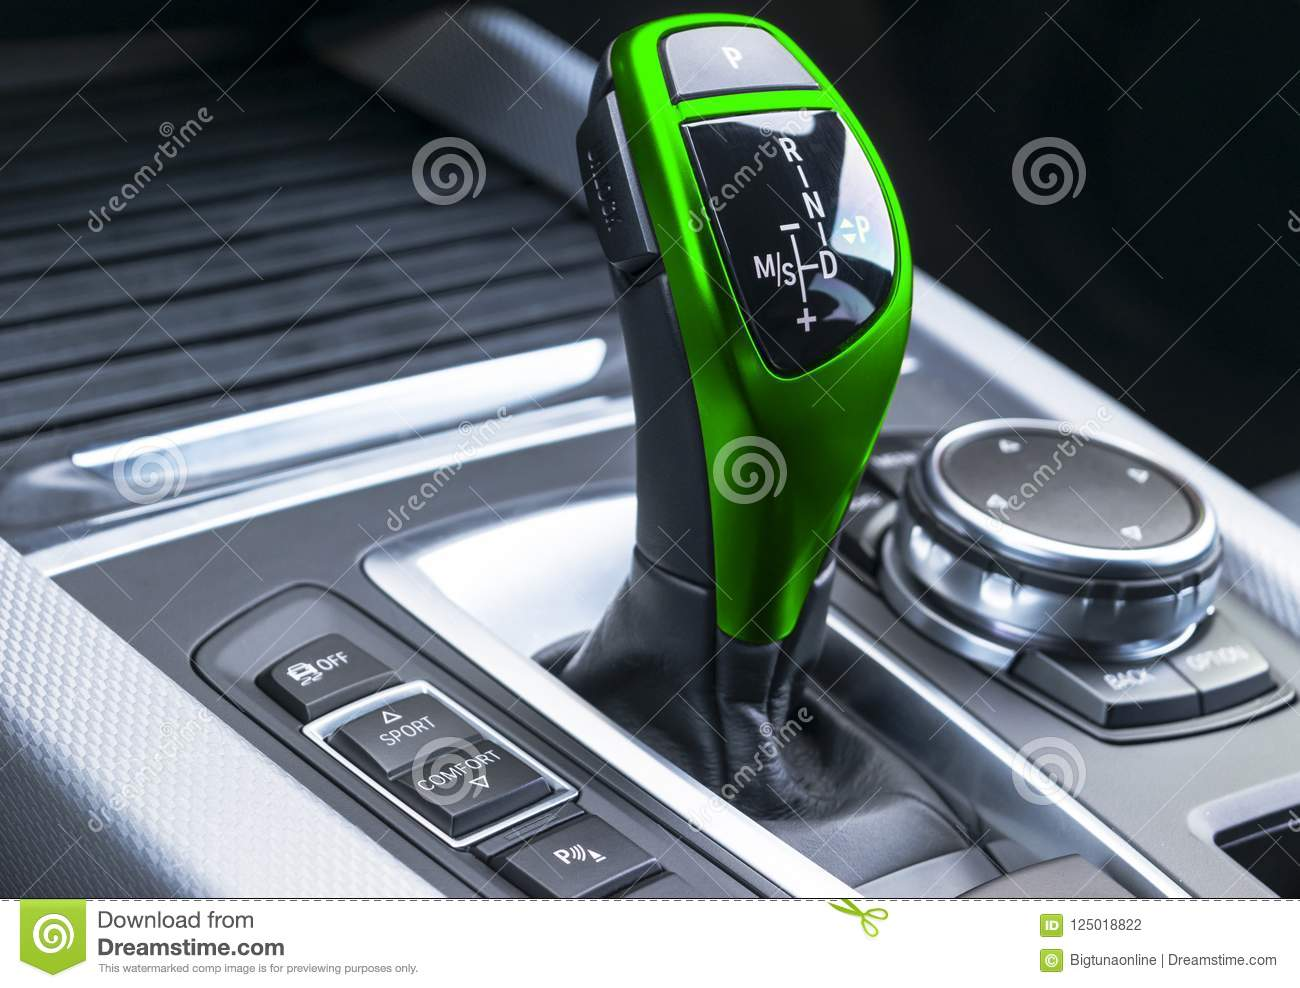 Green Automatic gear stick of a modern car. Modern car interior details. Close up view. Car detailing. Automatic transmission leve